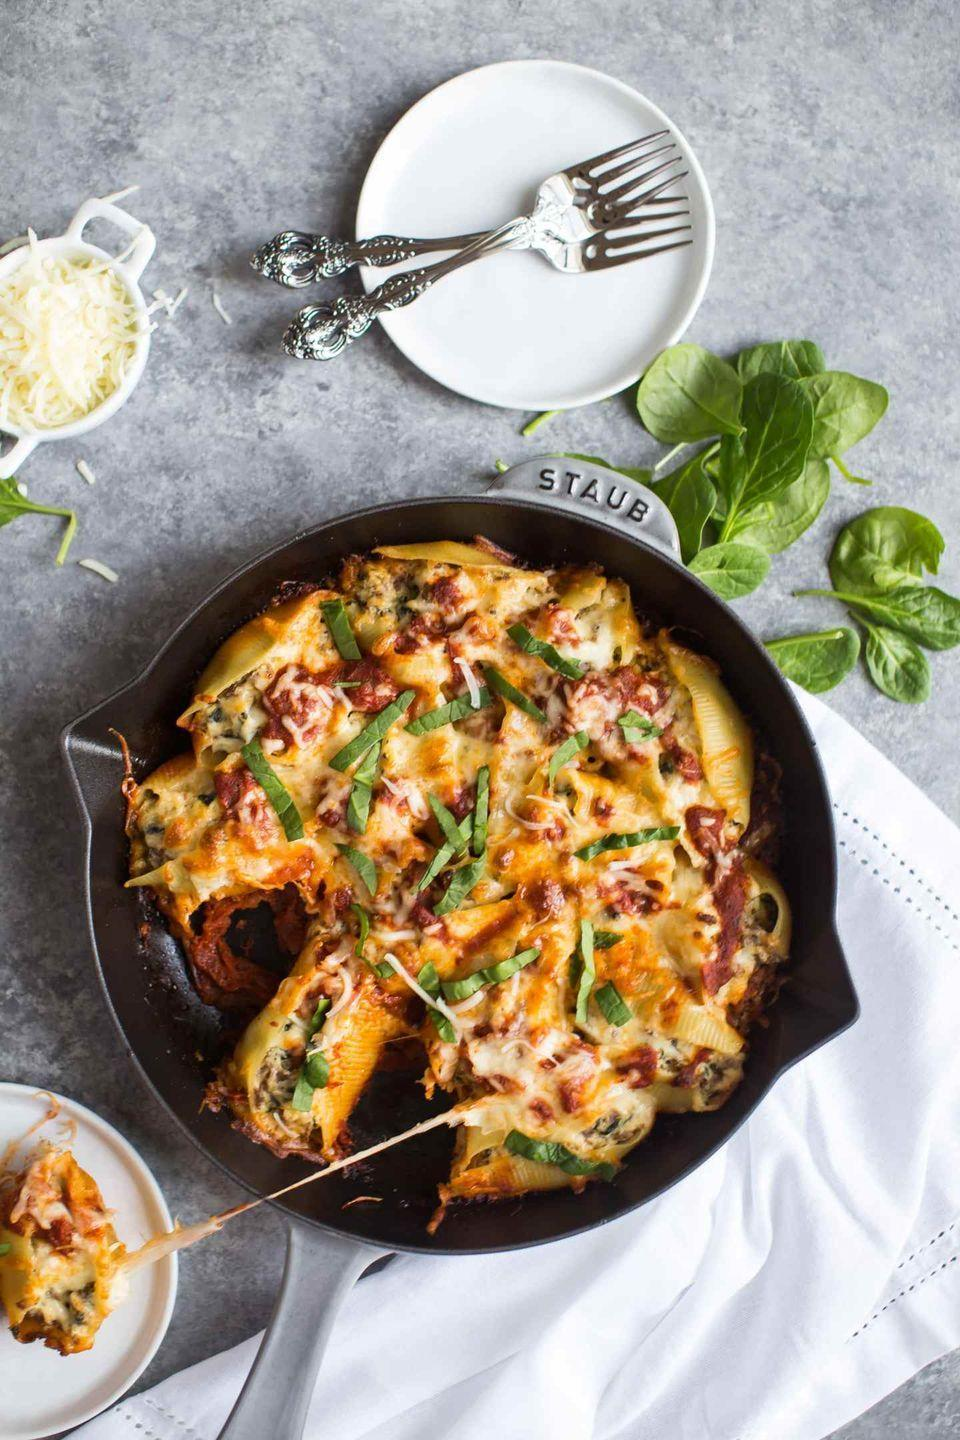 """<p>These pasta shells are stuffed to the brim with a cheesy sausage filling. Top them with even more mozzarella for the ultimate cheese pull. </p><p><strong>Get the recipe at <a href=""""https://www.butterbeready.com/sausage-and-spinach-stuffed-shells/"""" rel=""""nofollow noopener"""" target=""""_blank"""" data-ylk=""""slk:Butter Be Ready"""" class=""""link rapid-noclick-resp"""">Butter Be Ready</a>. </strong></p><p><a class=""""link rapid-noclick-resp"""" href=""""https://go.redirectingat.com?id=74968X1596630&url=https%3A%2F%2Fwww.walmart.com%2Fsearch%2F%3Fquery%3Dcast%2Biron%2Bskillet&sref=https%3A%2F%2Fwww.thepioneerwoman.com%2Ffood-cooking%2Fmeals-menus%2Fg37078352%2Fitalian-sausage-recipes%2F"""" rel=""""nofollow noopener"""" target=""""_blank"""" data-ylk=""""slk:SHOP CAST IRON SKILLETS"""">SHOP CAST IRON SKILLETS</a></p>"""